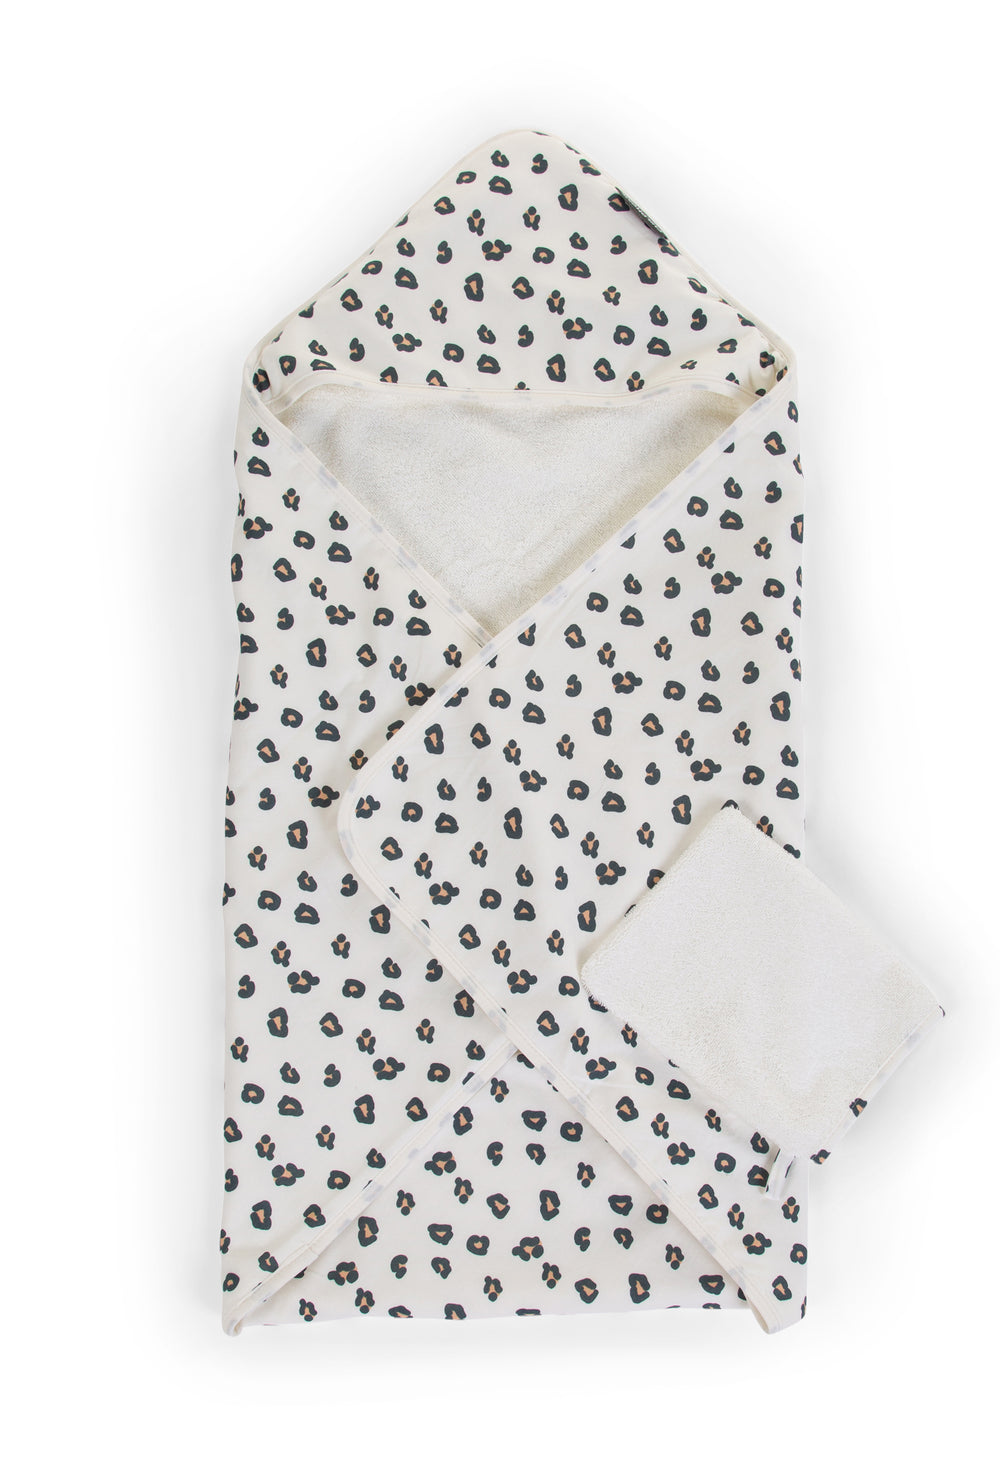 Childhome Bathcape & Facecloth - Jersey Leopard